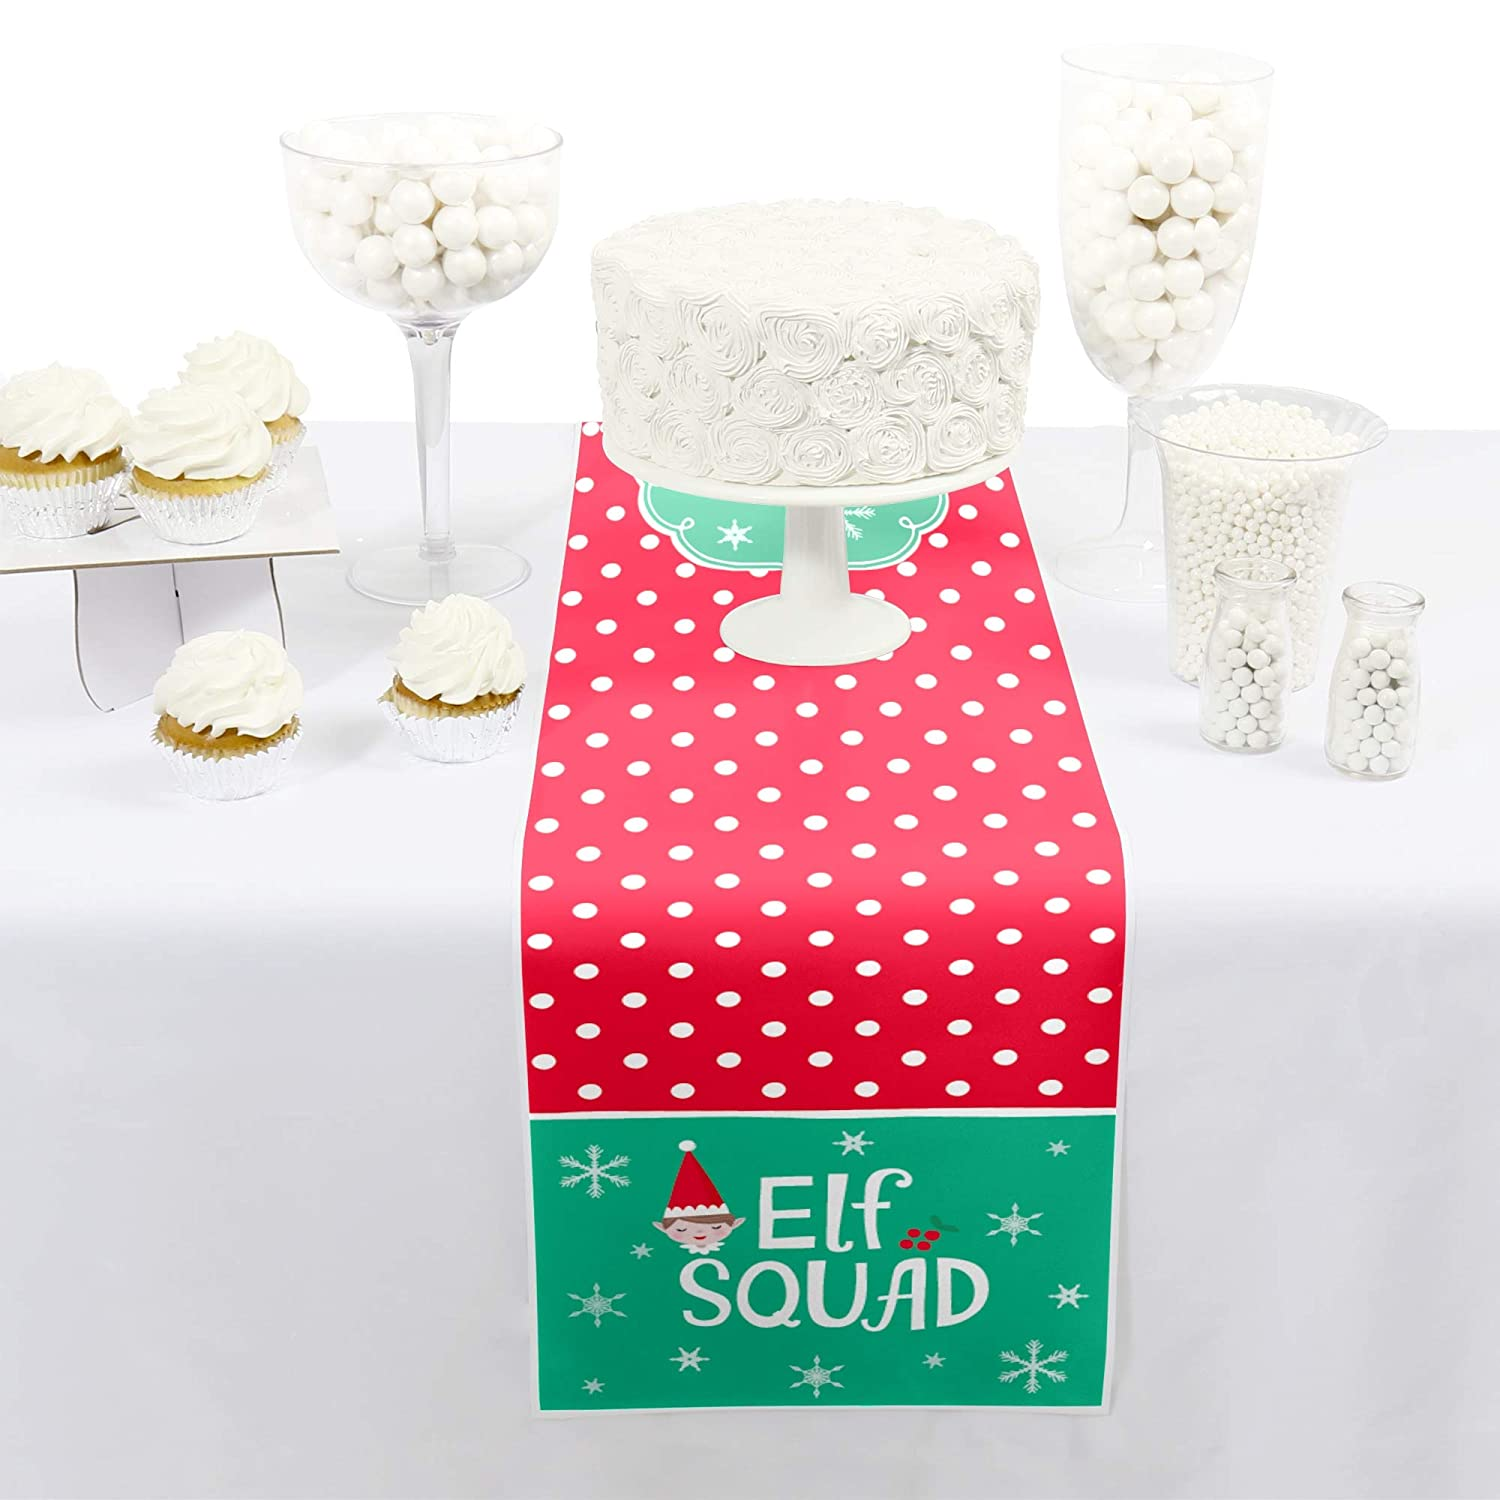 Petite Kids Elf Christmas and Birthday Party Paper Table Runner Big Dot of Happiness Elf Squad 12 x 60